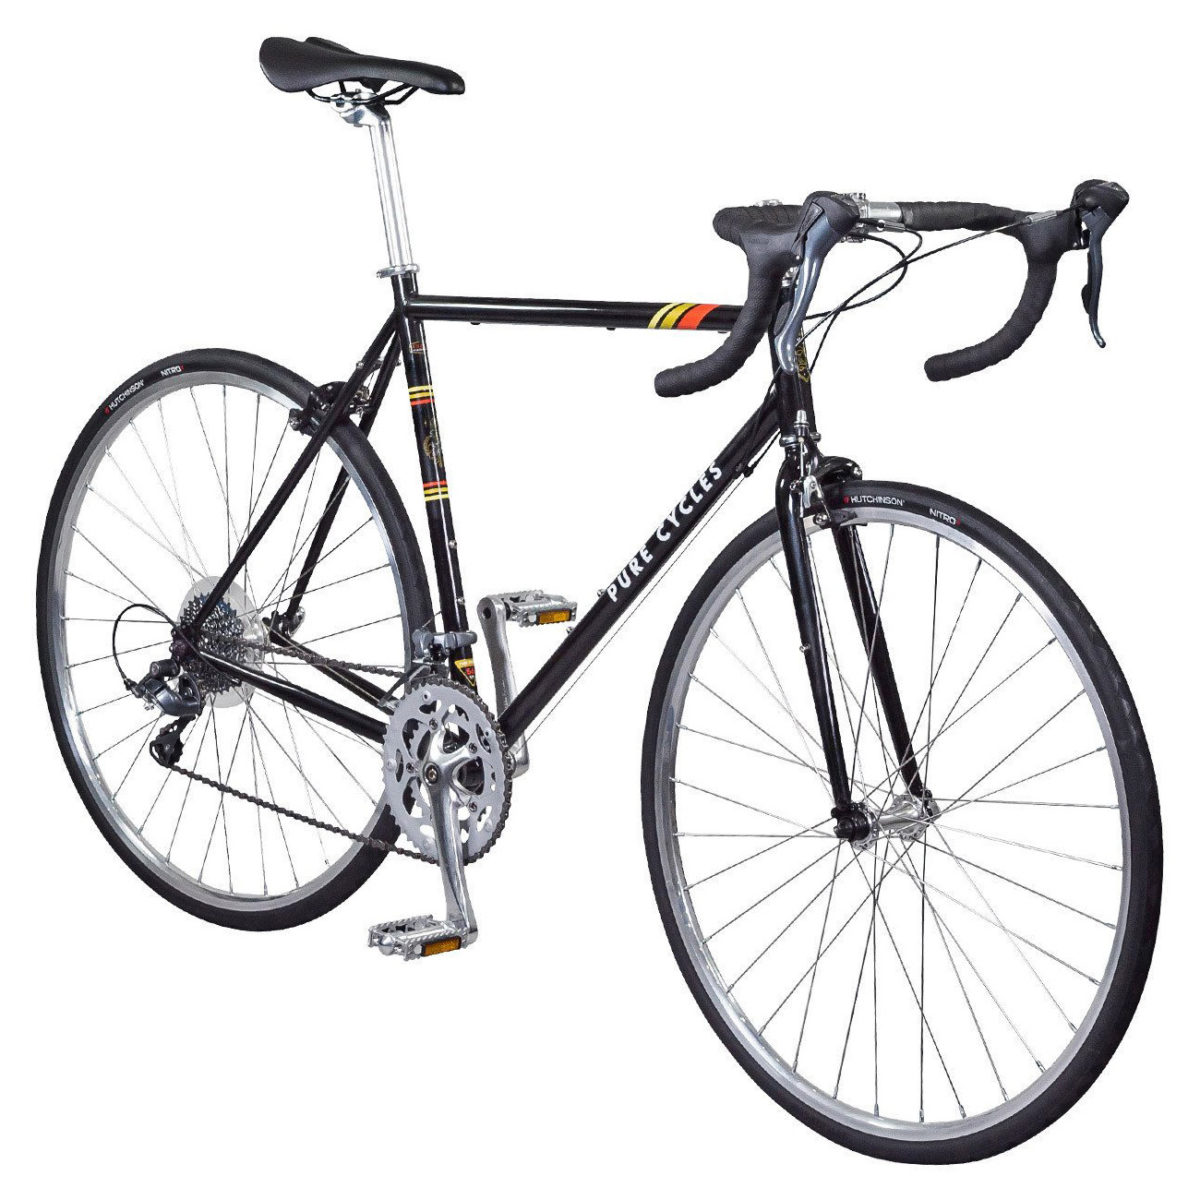 1200x1200 Pure Cycles Delivering Affordable Steel Road Bike Amp Commuter In Eu